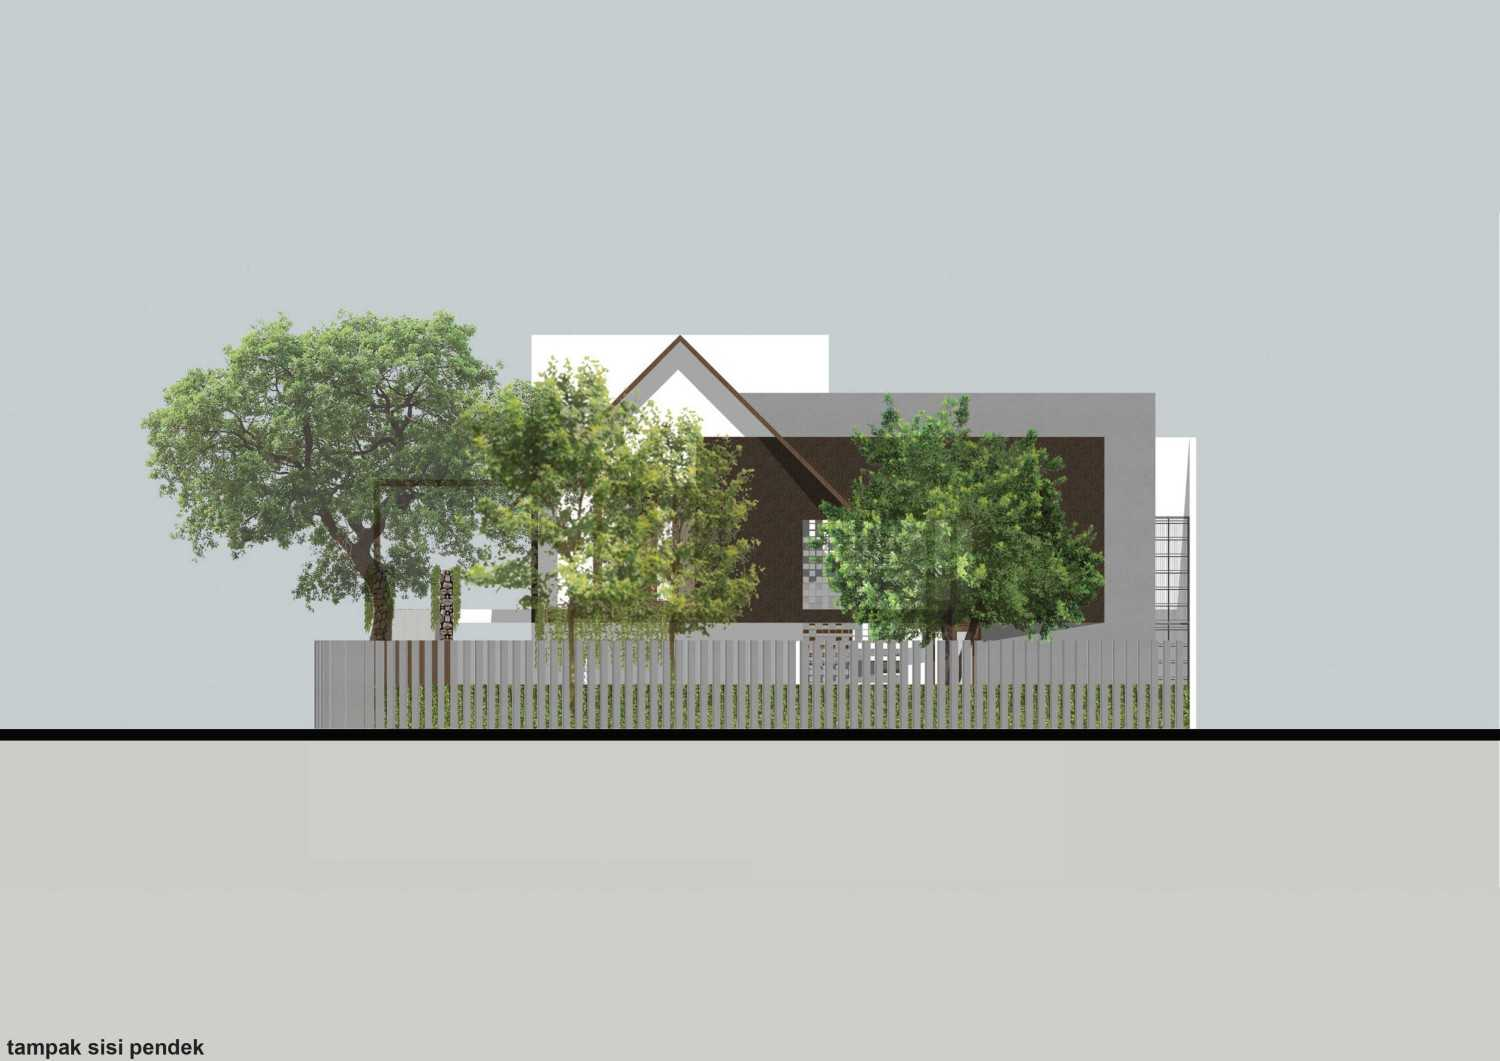 Monokroma Architect Puri Indah House Jakarta Jakarta 19-Draft-2-East-Elevation  15145